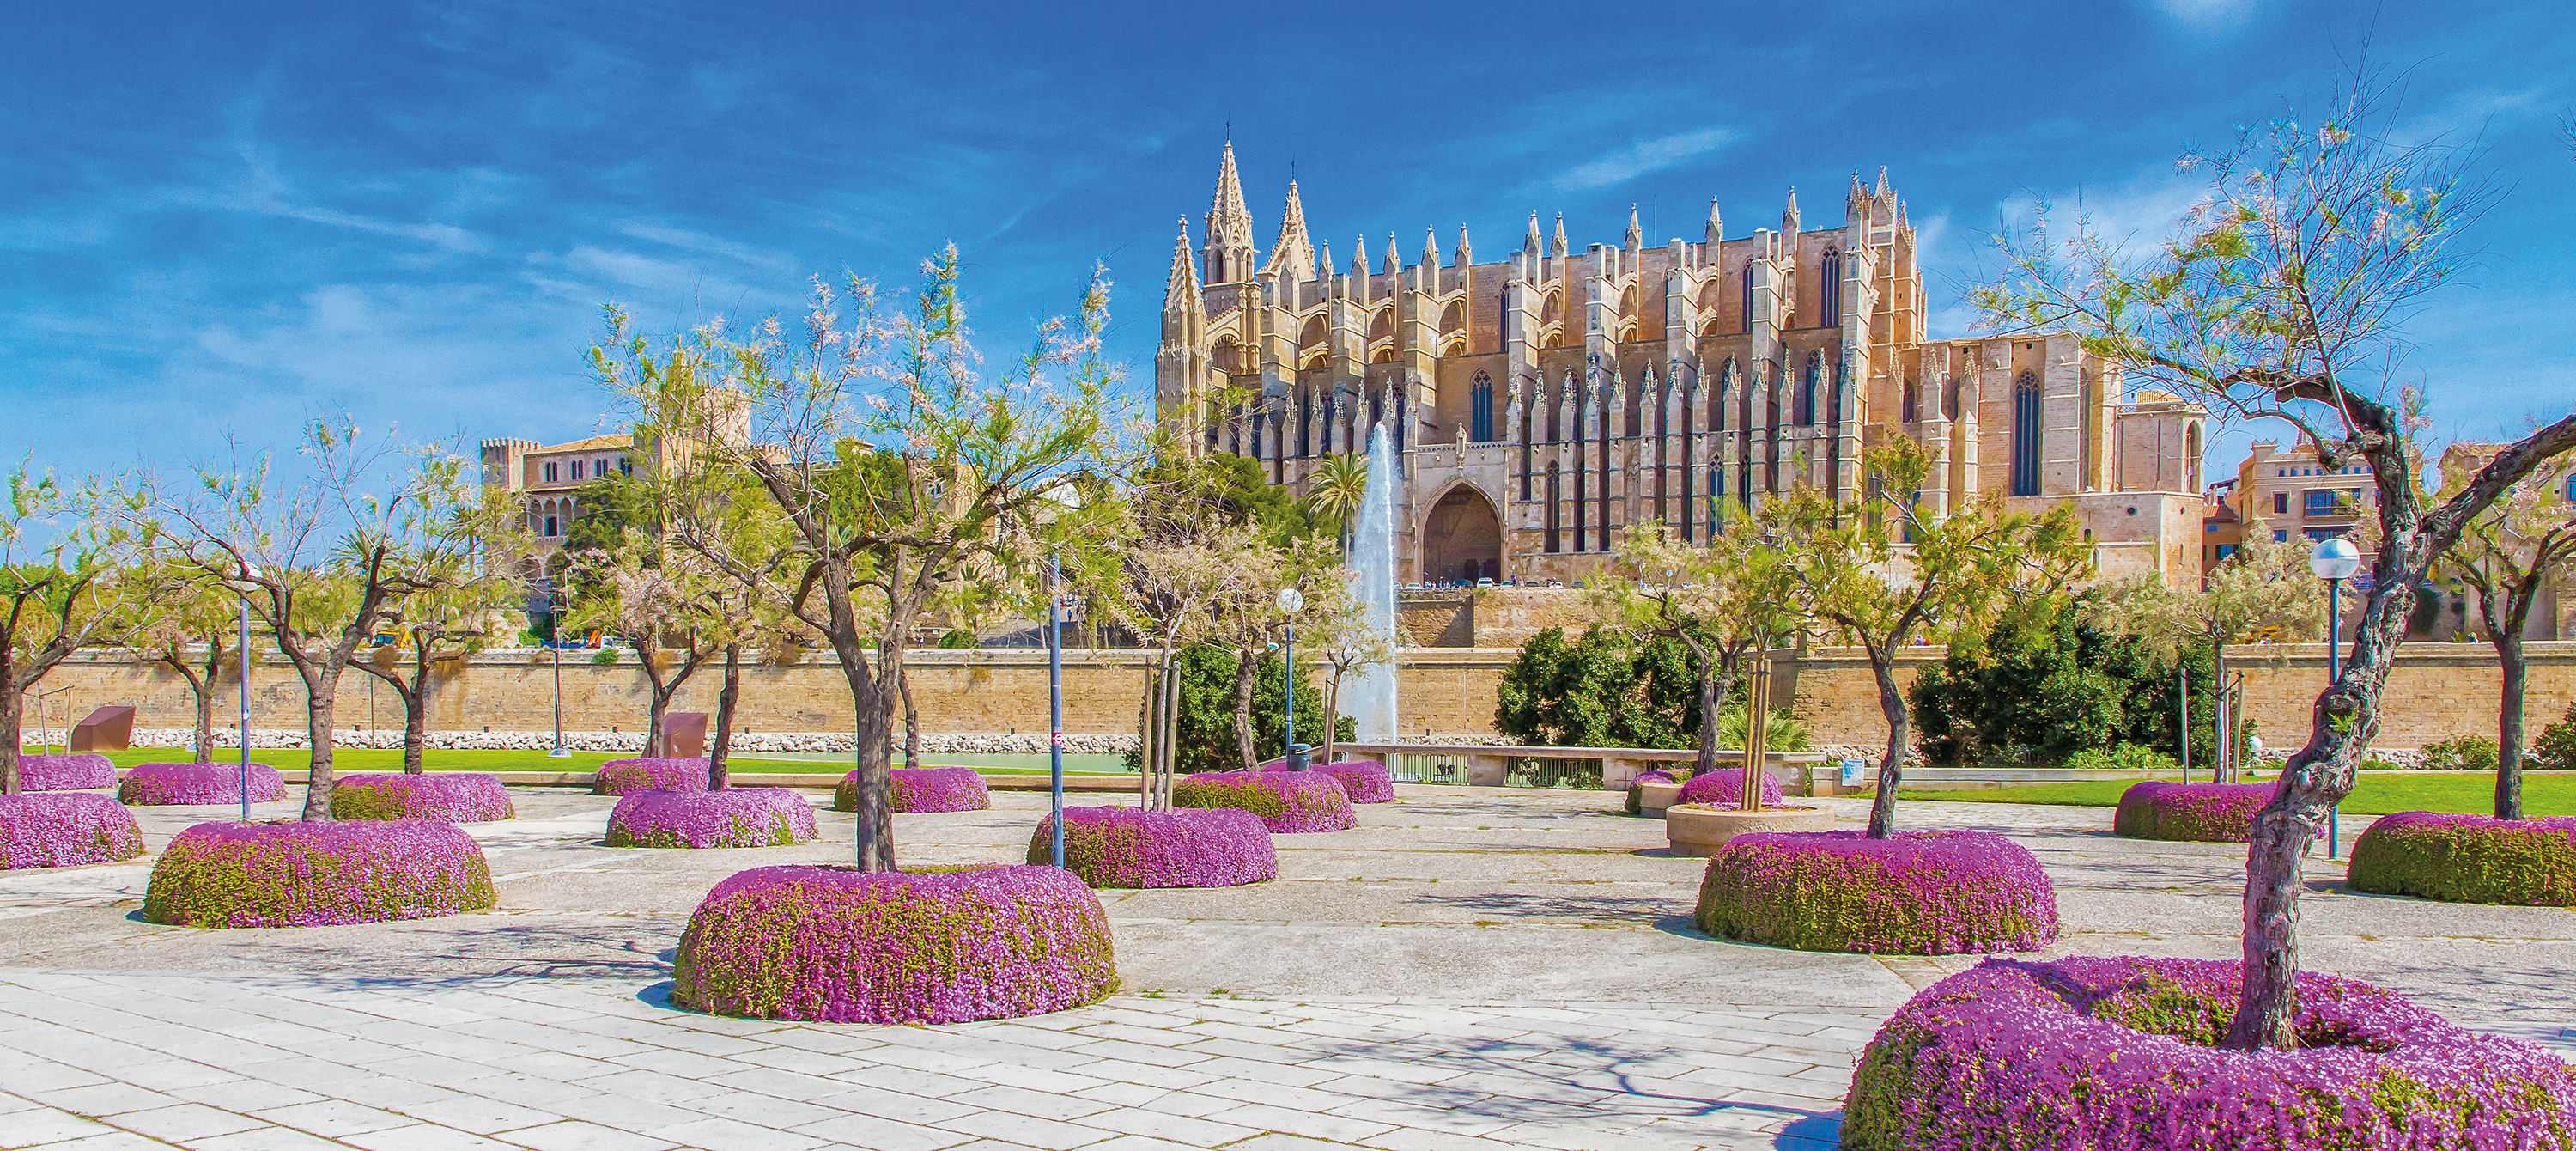 La Seu Cathedral and gardens